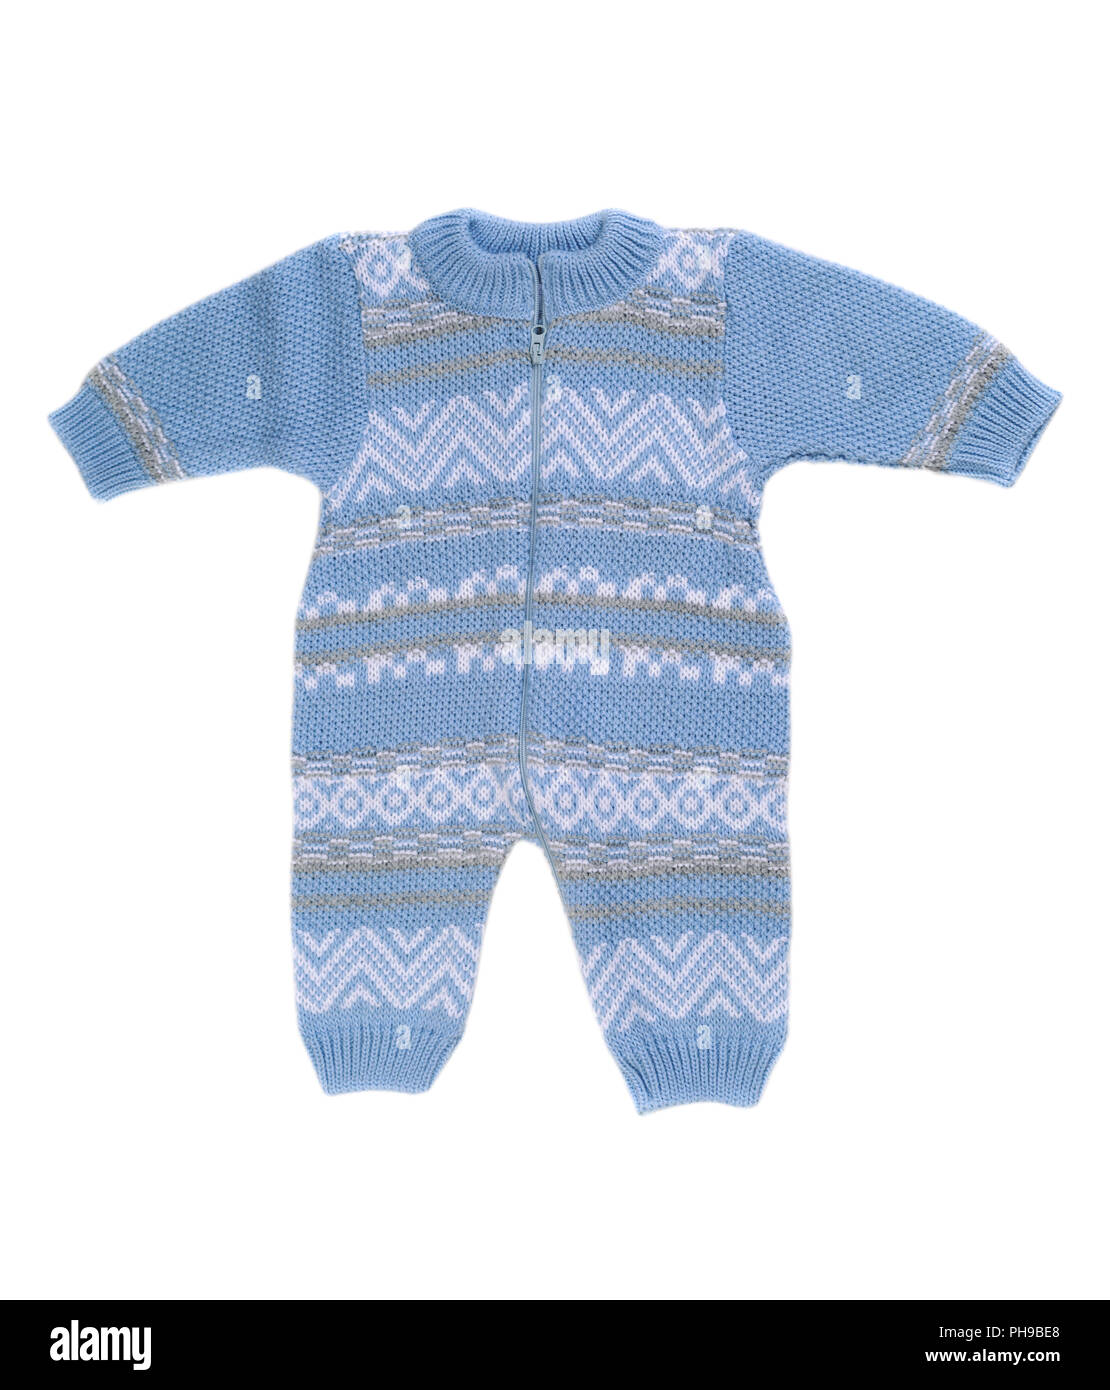 Knitted blue rompers. - Stock Image